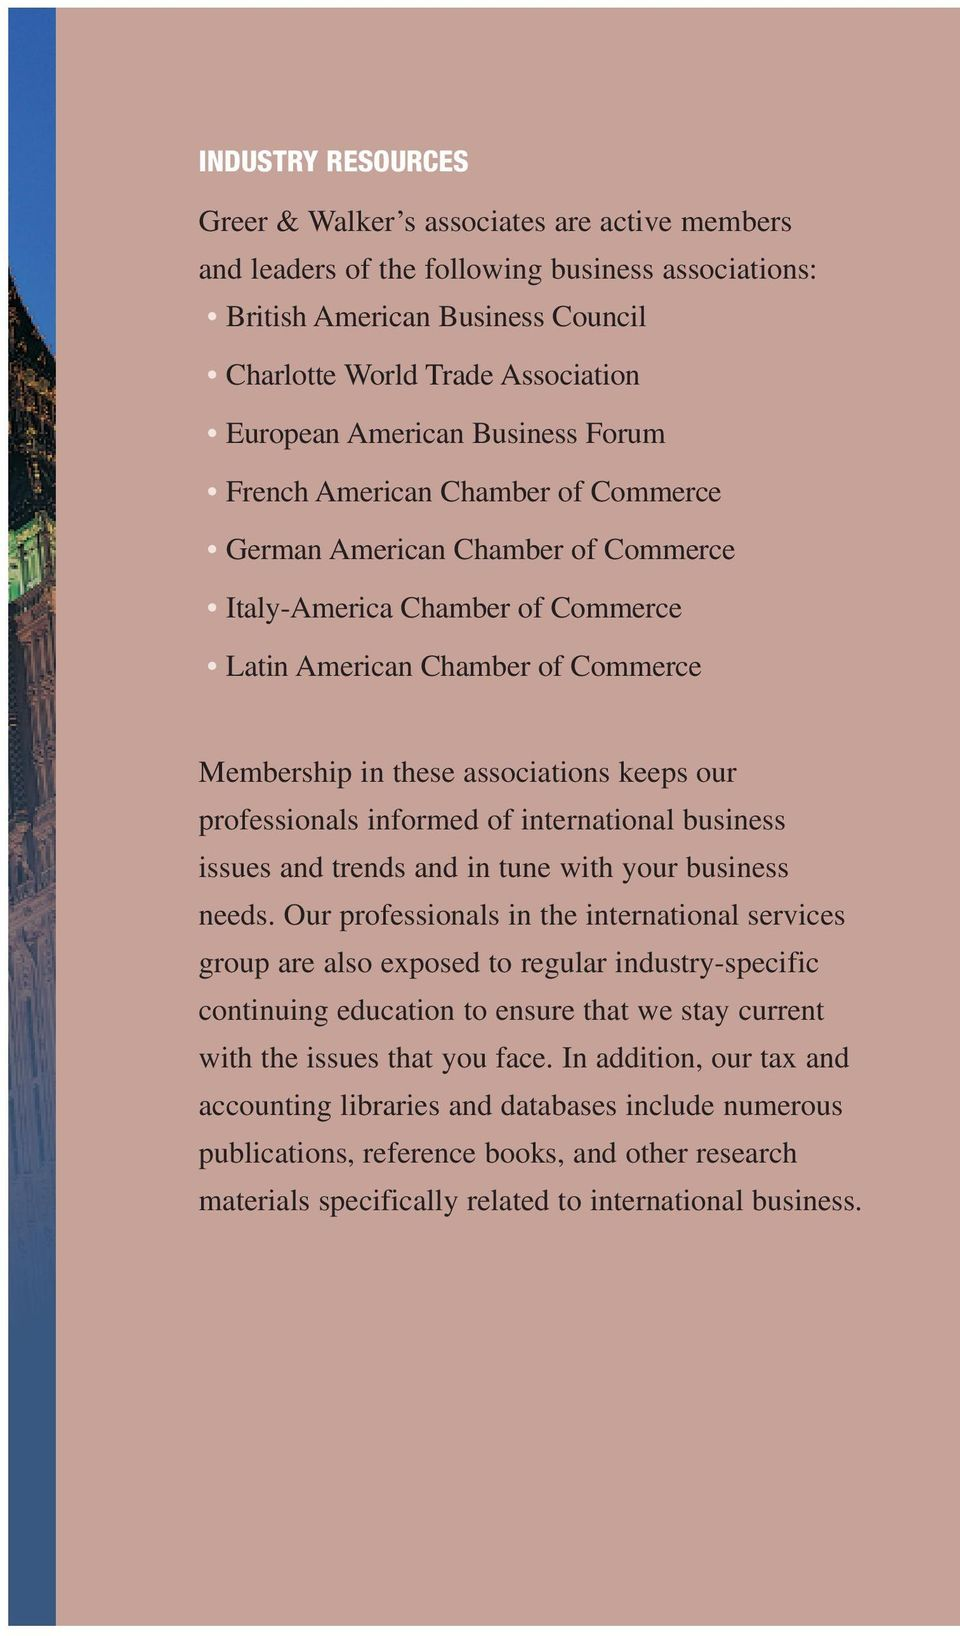 keeps our professionals informed of international business issues and trends and in tune with your business needs.